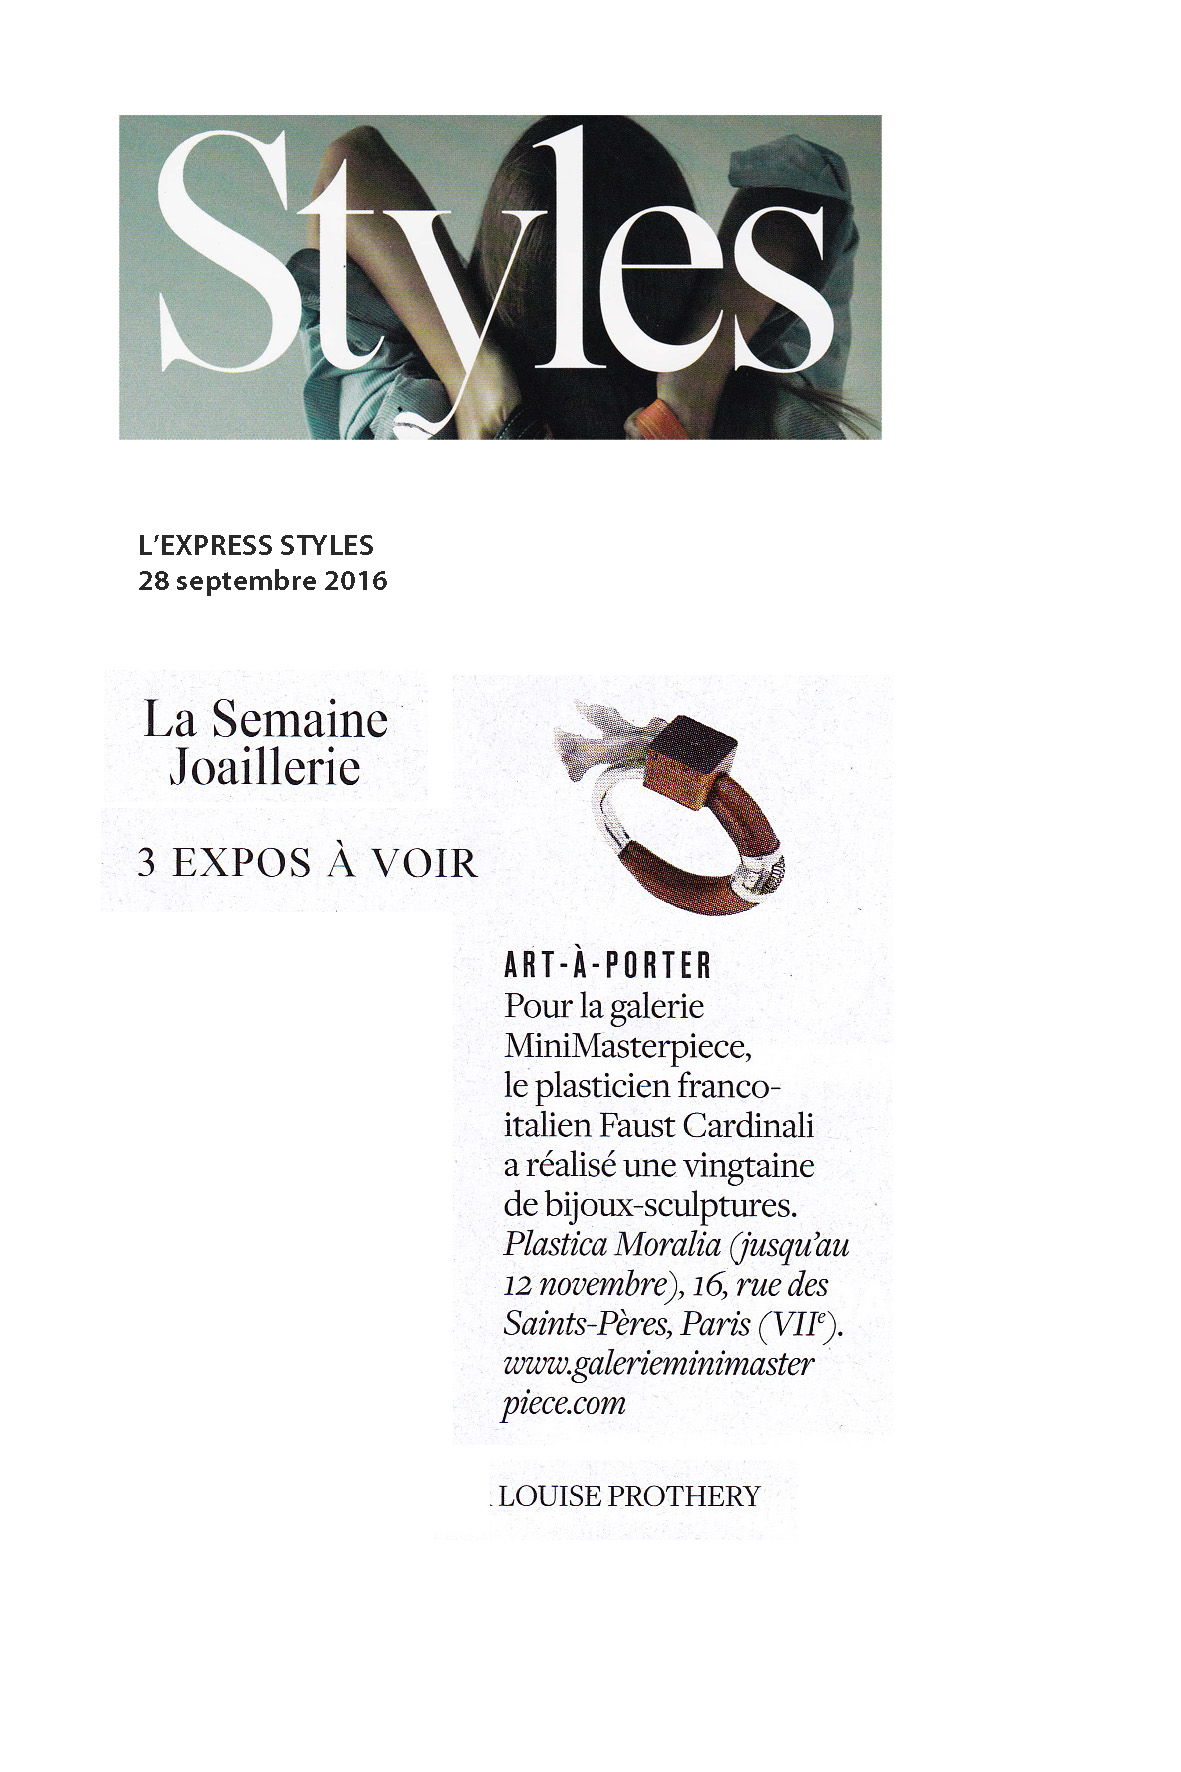 expressstyles-28septembre2016